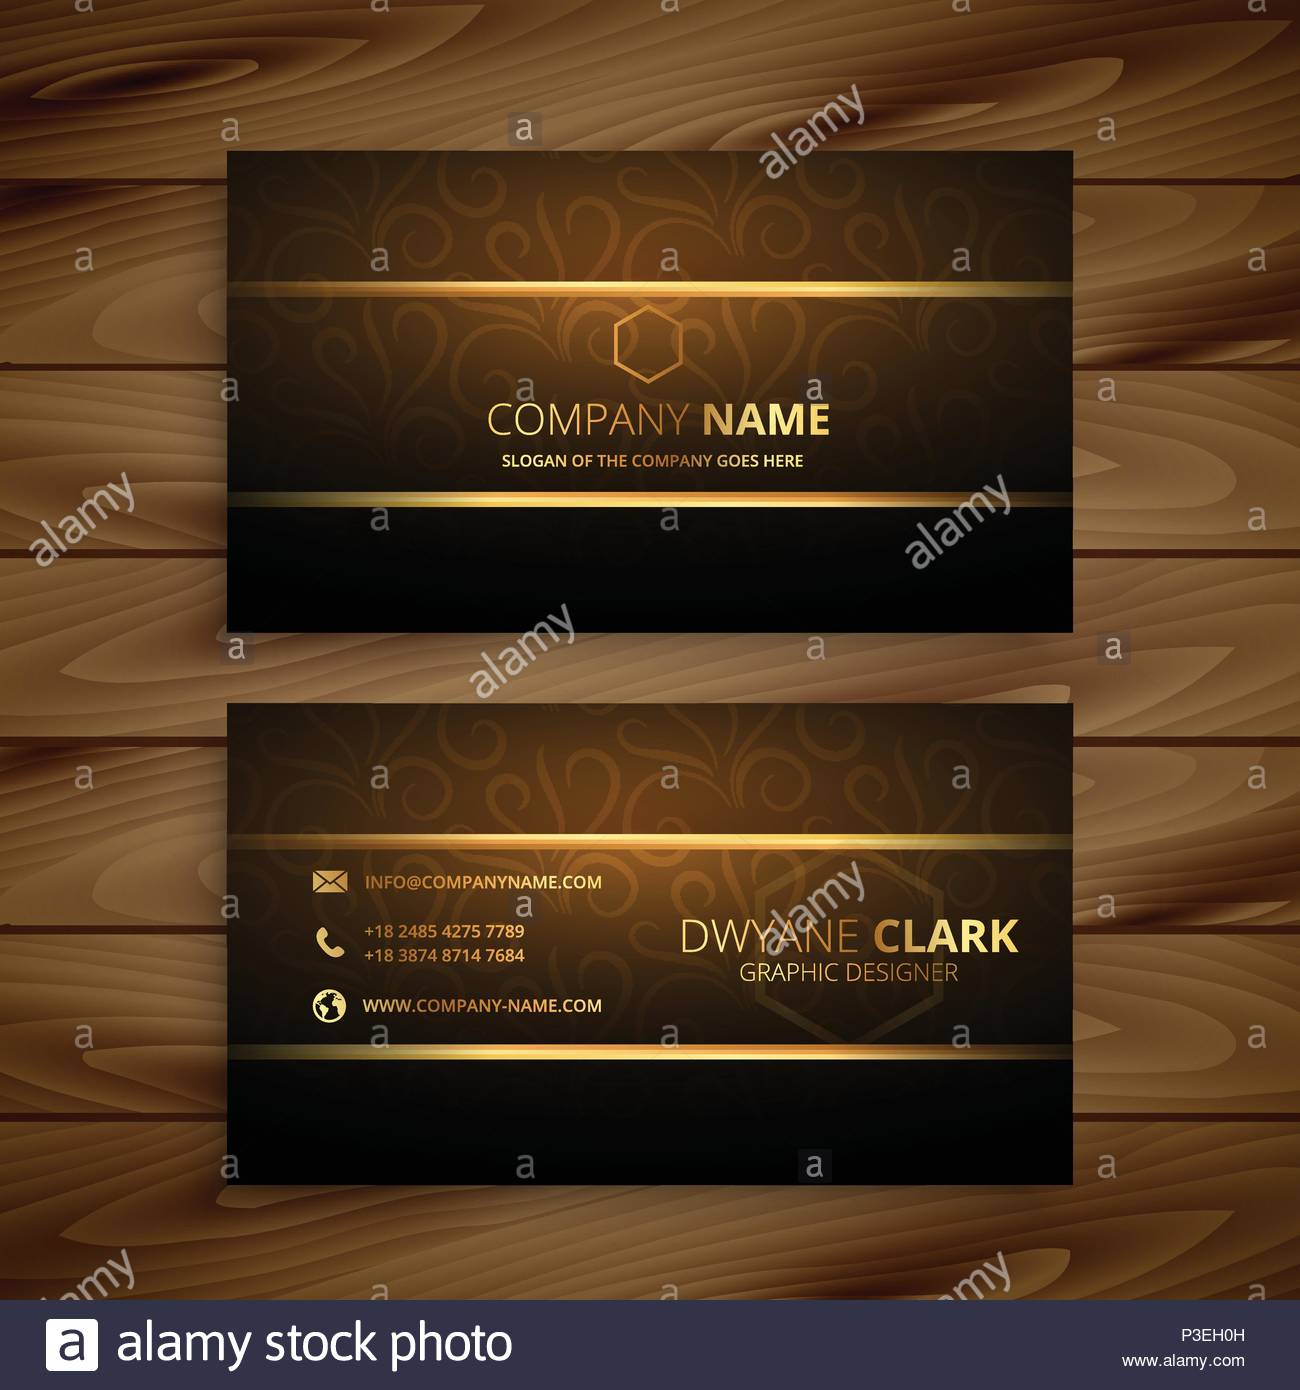 Awesome golden business card design stock vector art illustration awesome golden business card design reheart Images